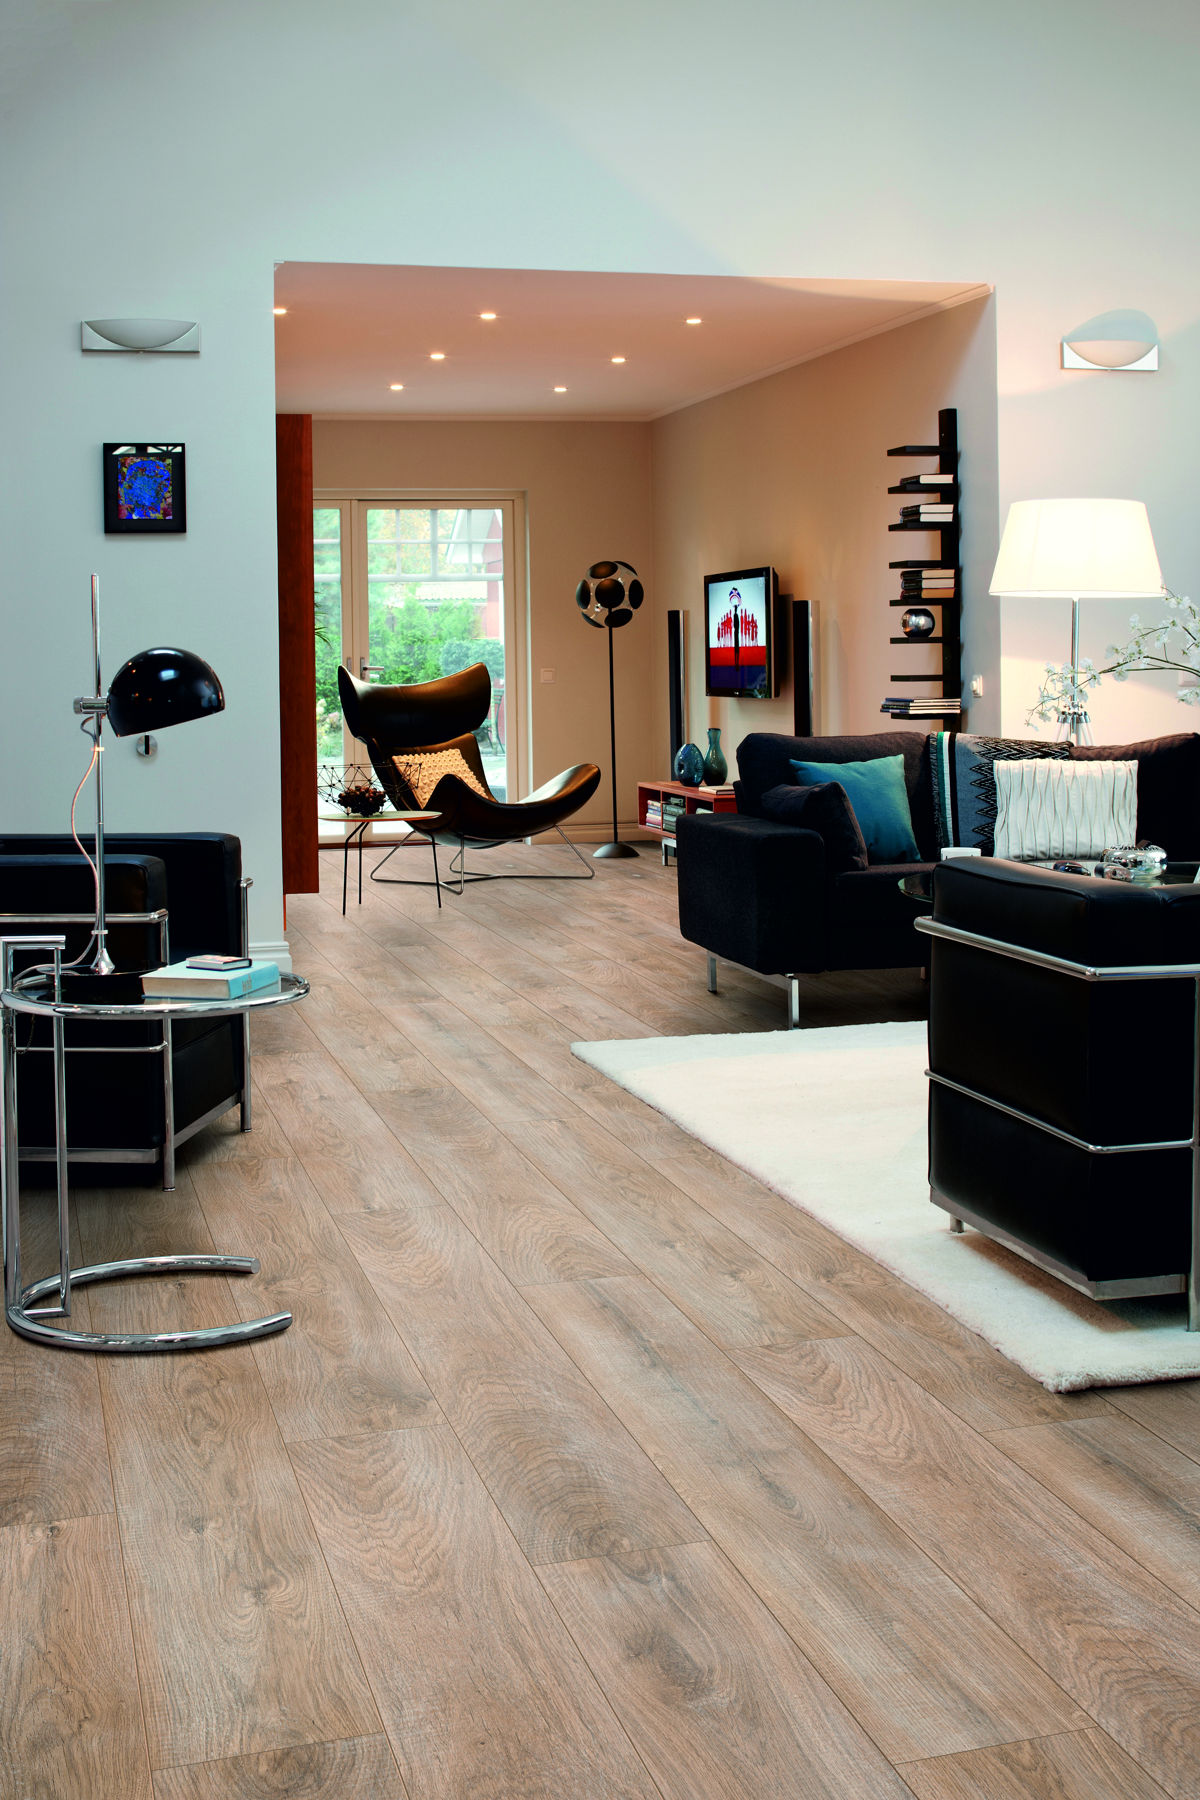 flooring pergo applewood t lrg width why room floor smart investment four height name reasons is a laminate